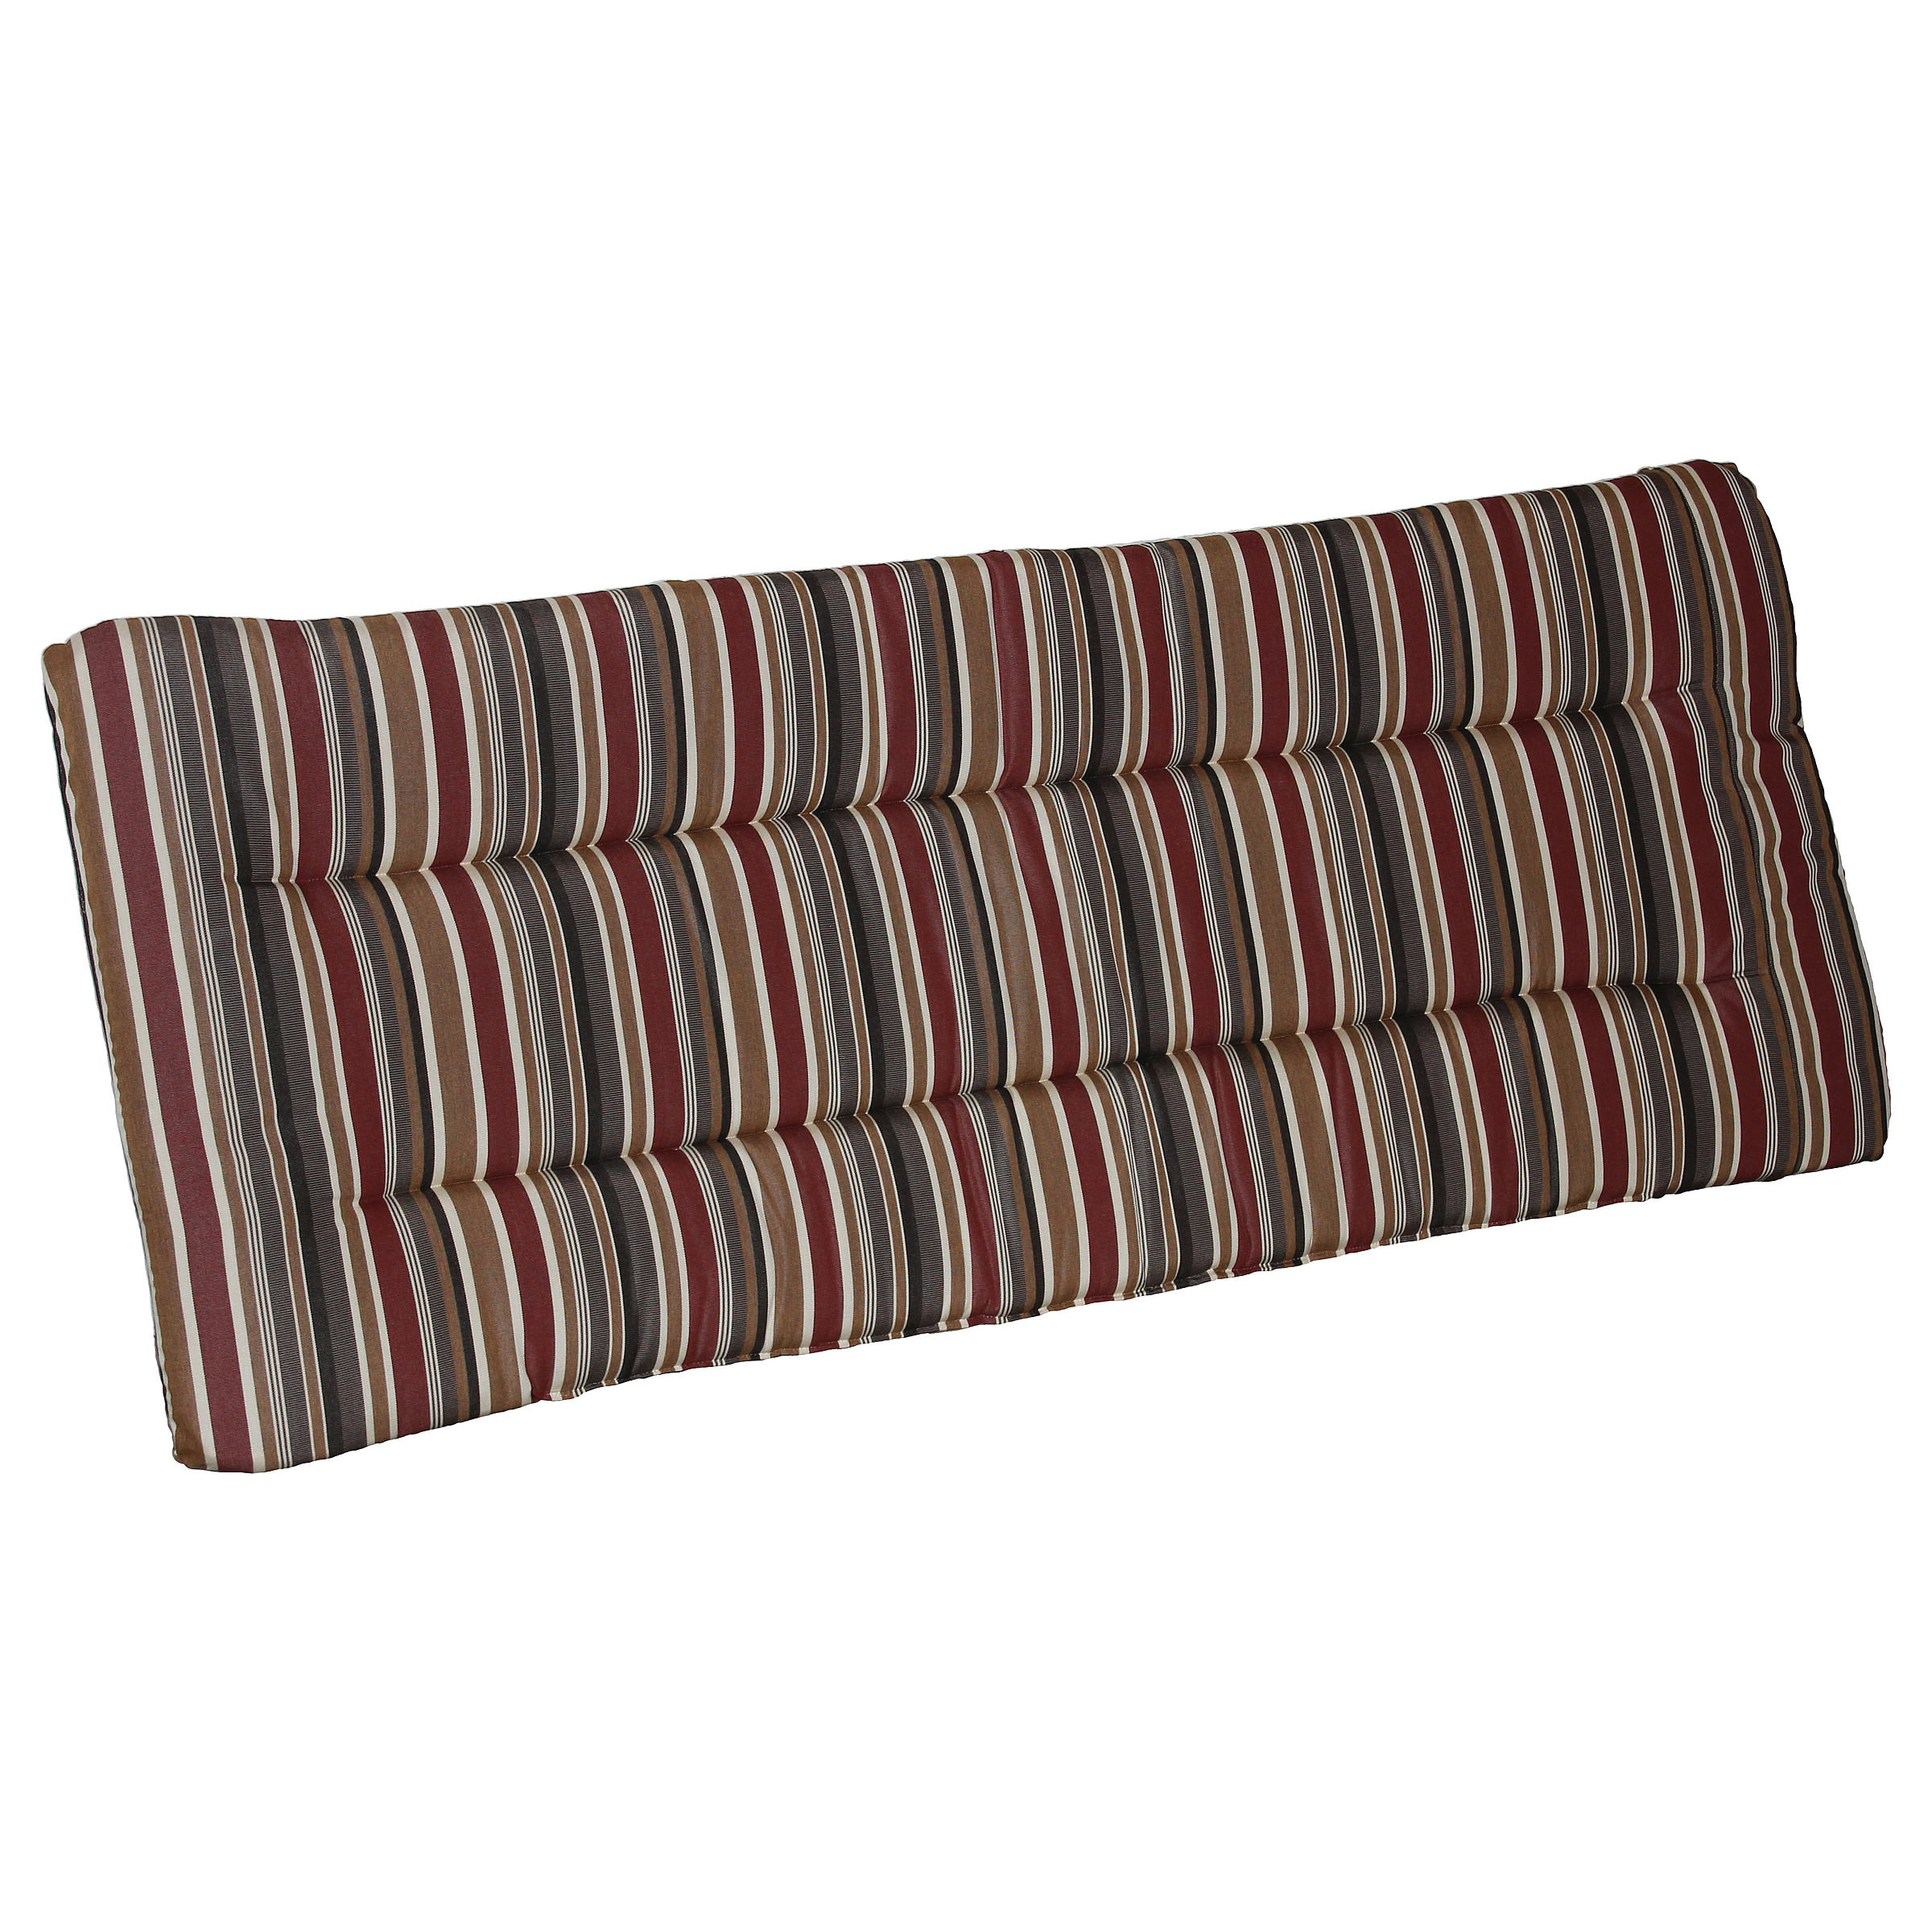 Tie-Ons included - 5 ft Swing Back Cushion